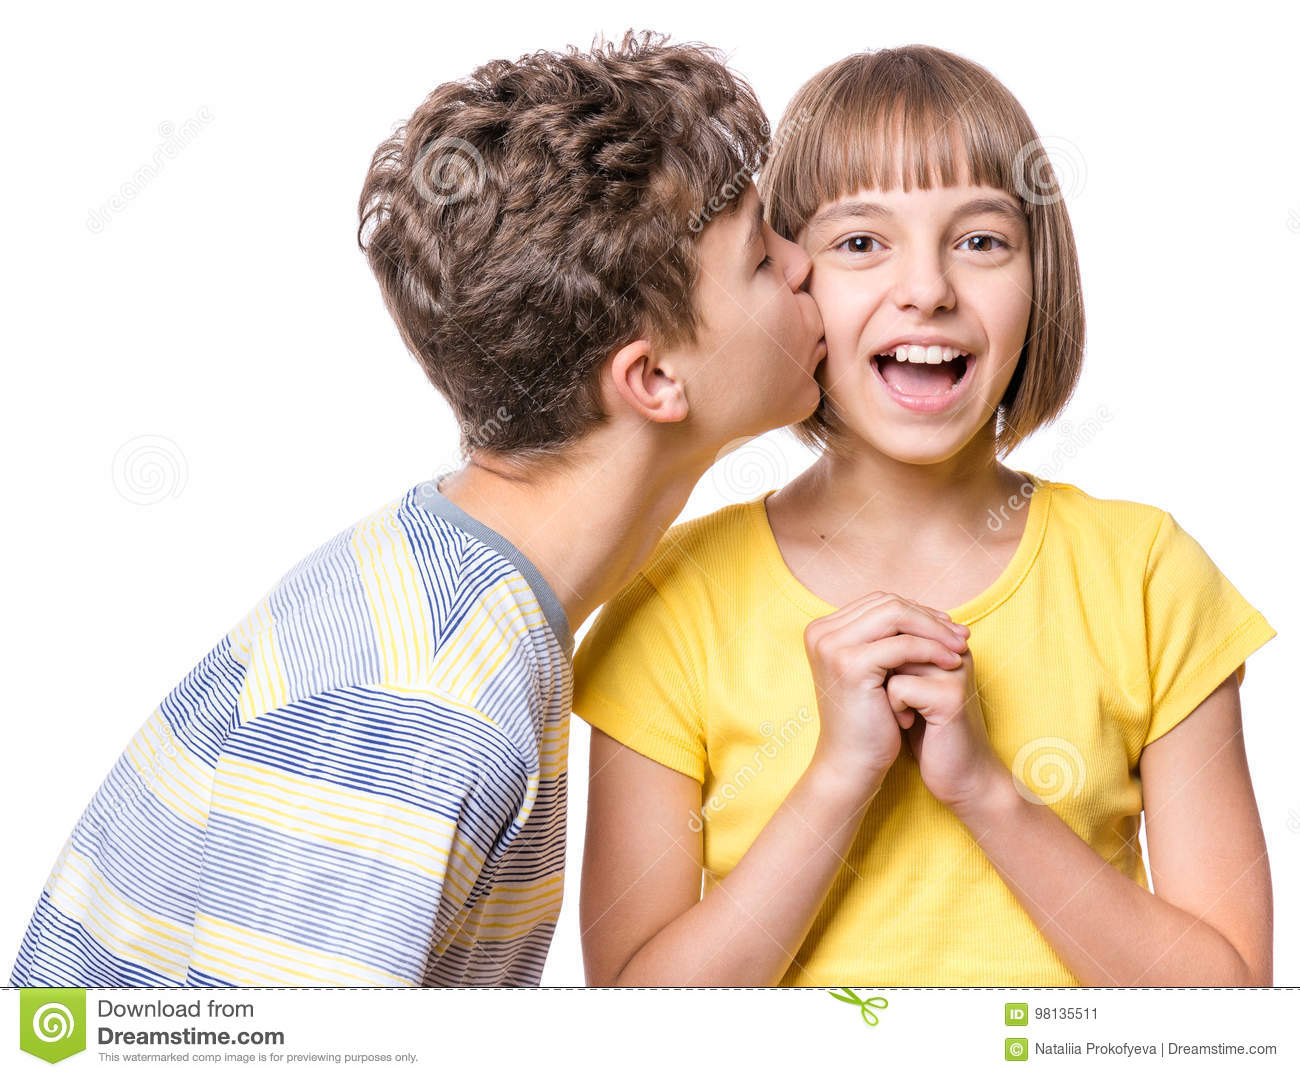 Friendship Teen Boy Kissing Beautiful Girl Portrait Of Happy Brother And Sister Isolated On White Background Funny Couple Children First Love